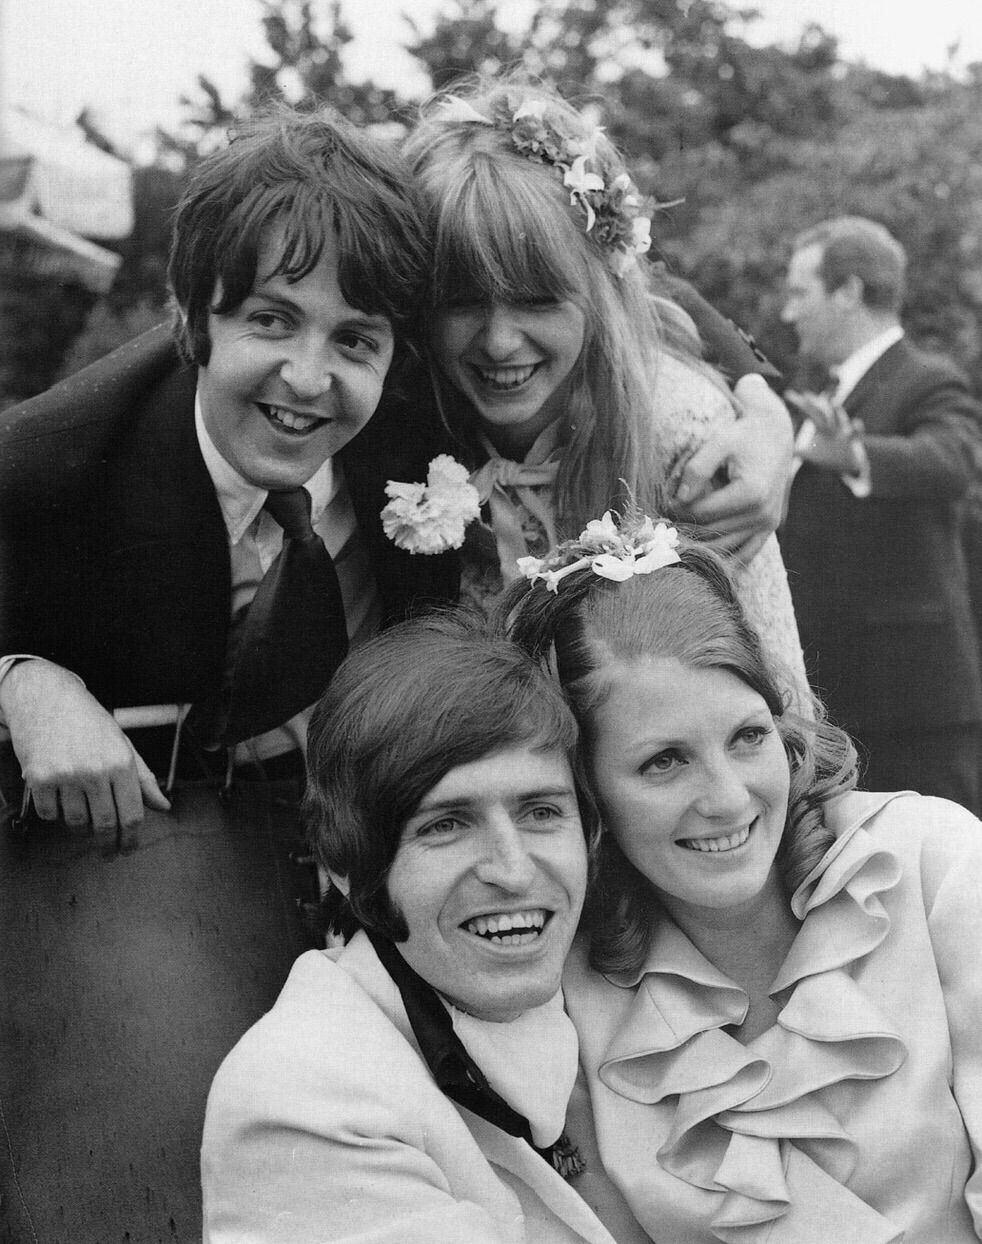 Paul McCartney and Jane Asher at Paul's brother Mike's